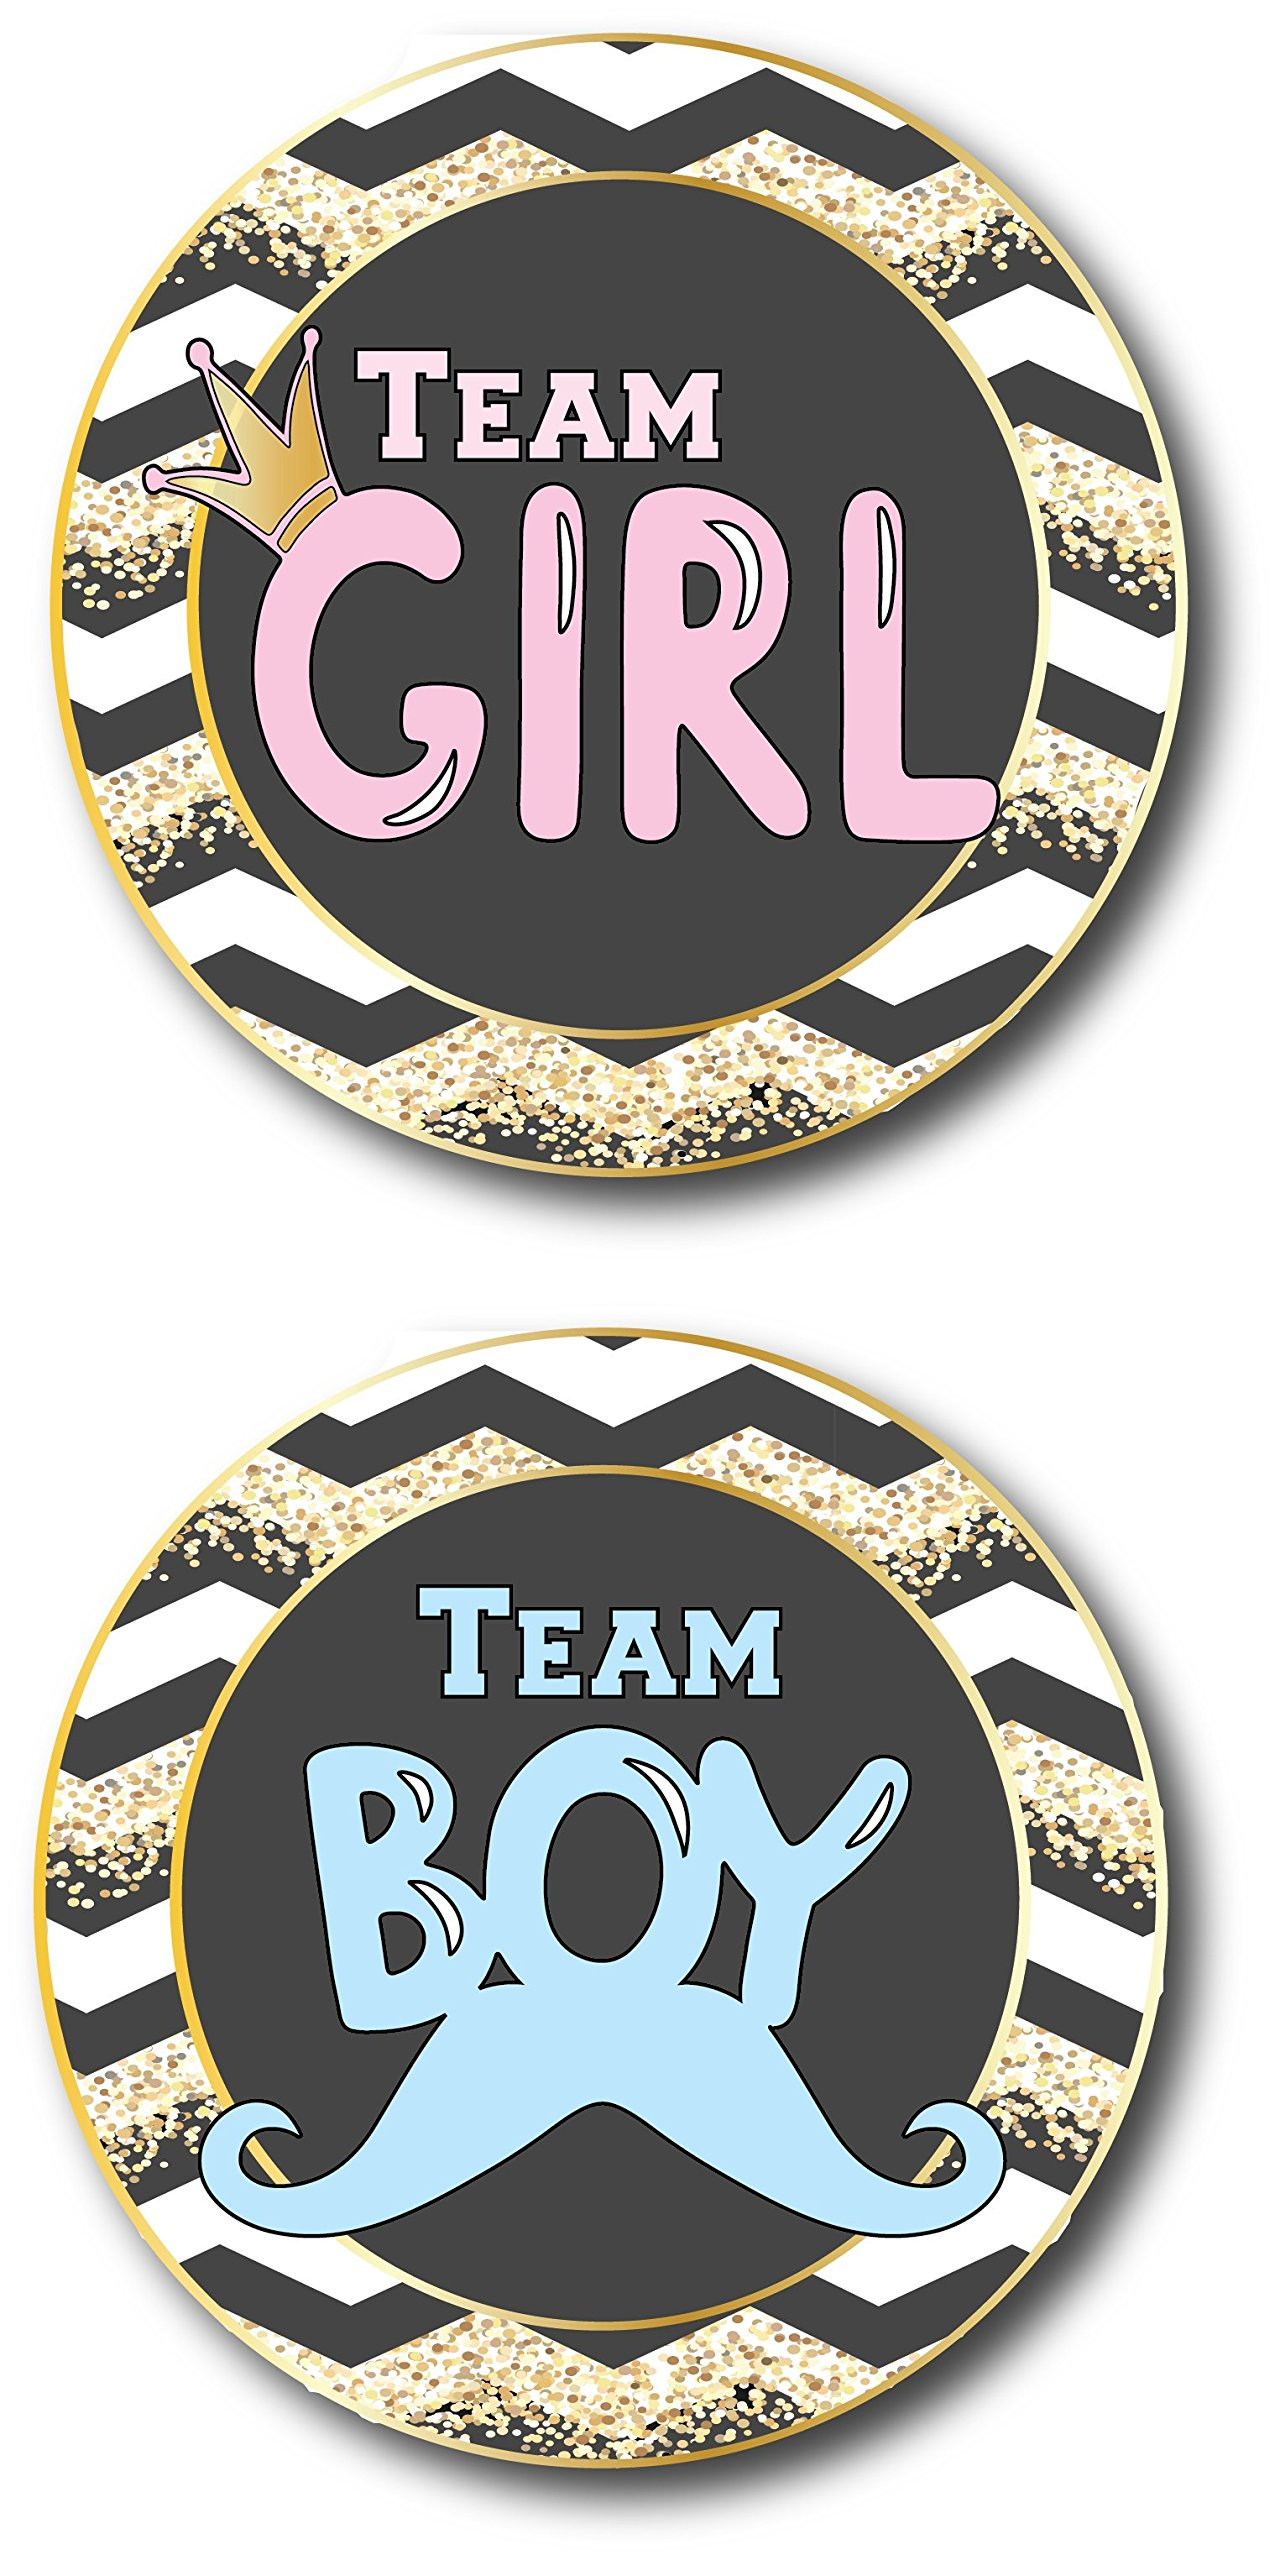 Baby Shower Games | 20 Sticker Badges For Team Girl & Team Boy Babies, Gender Reveal Team Boy And Team Girl Sticker Labels, Baby Shower Decorations And Party Supplies, Two Moms, Two Dads, Gold Theme by L&P Designs